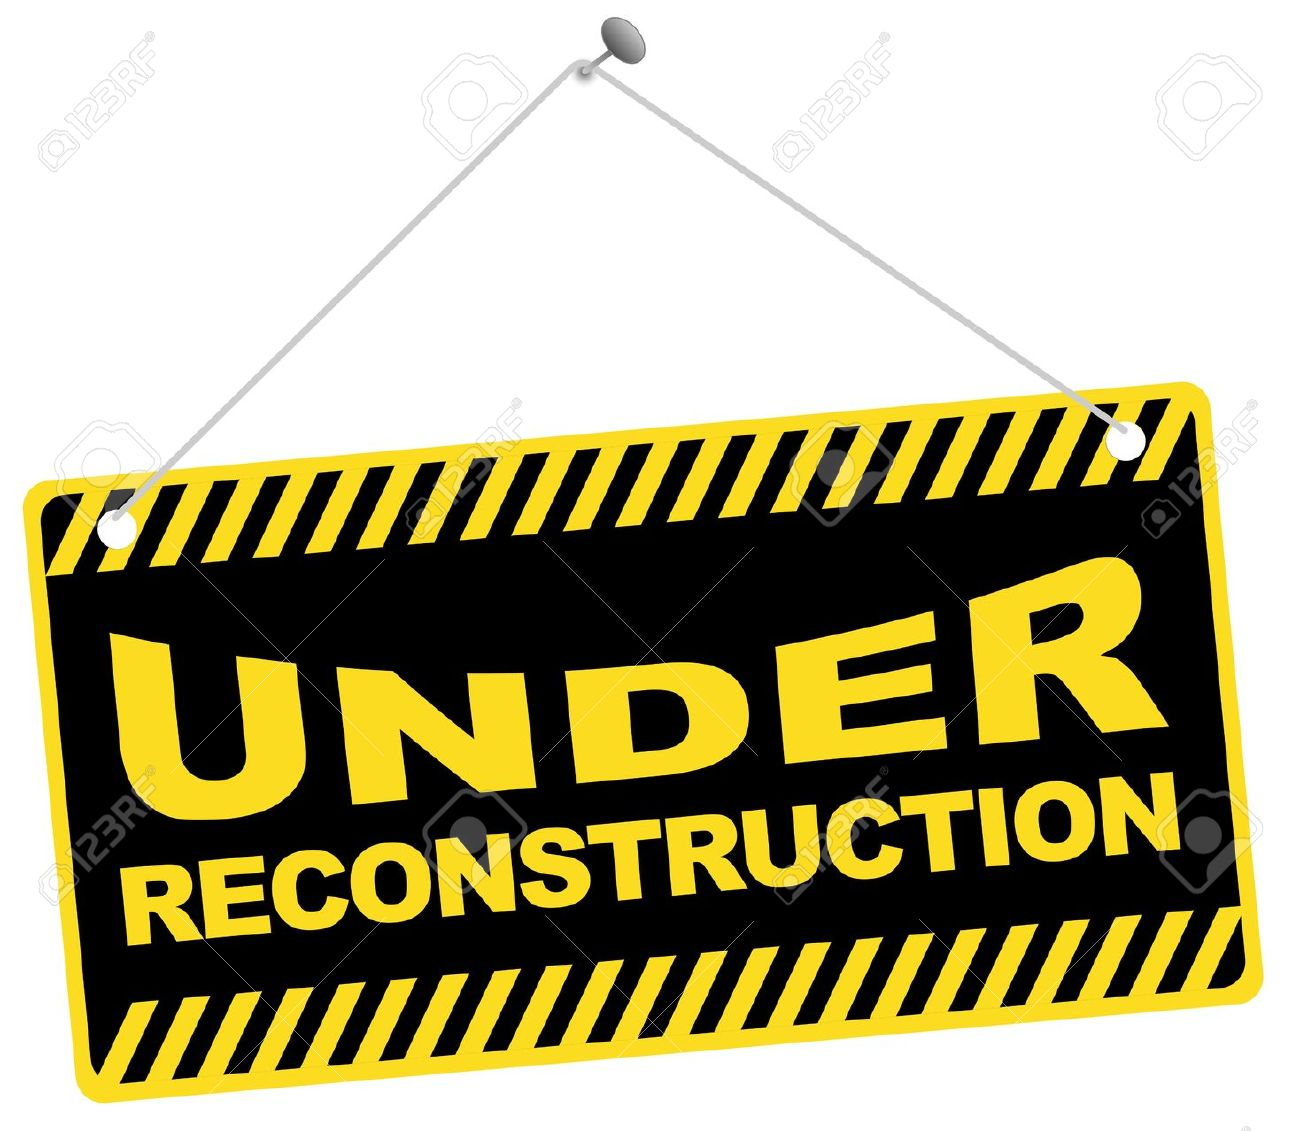 Reconstruction Clipart.